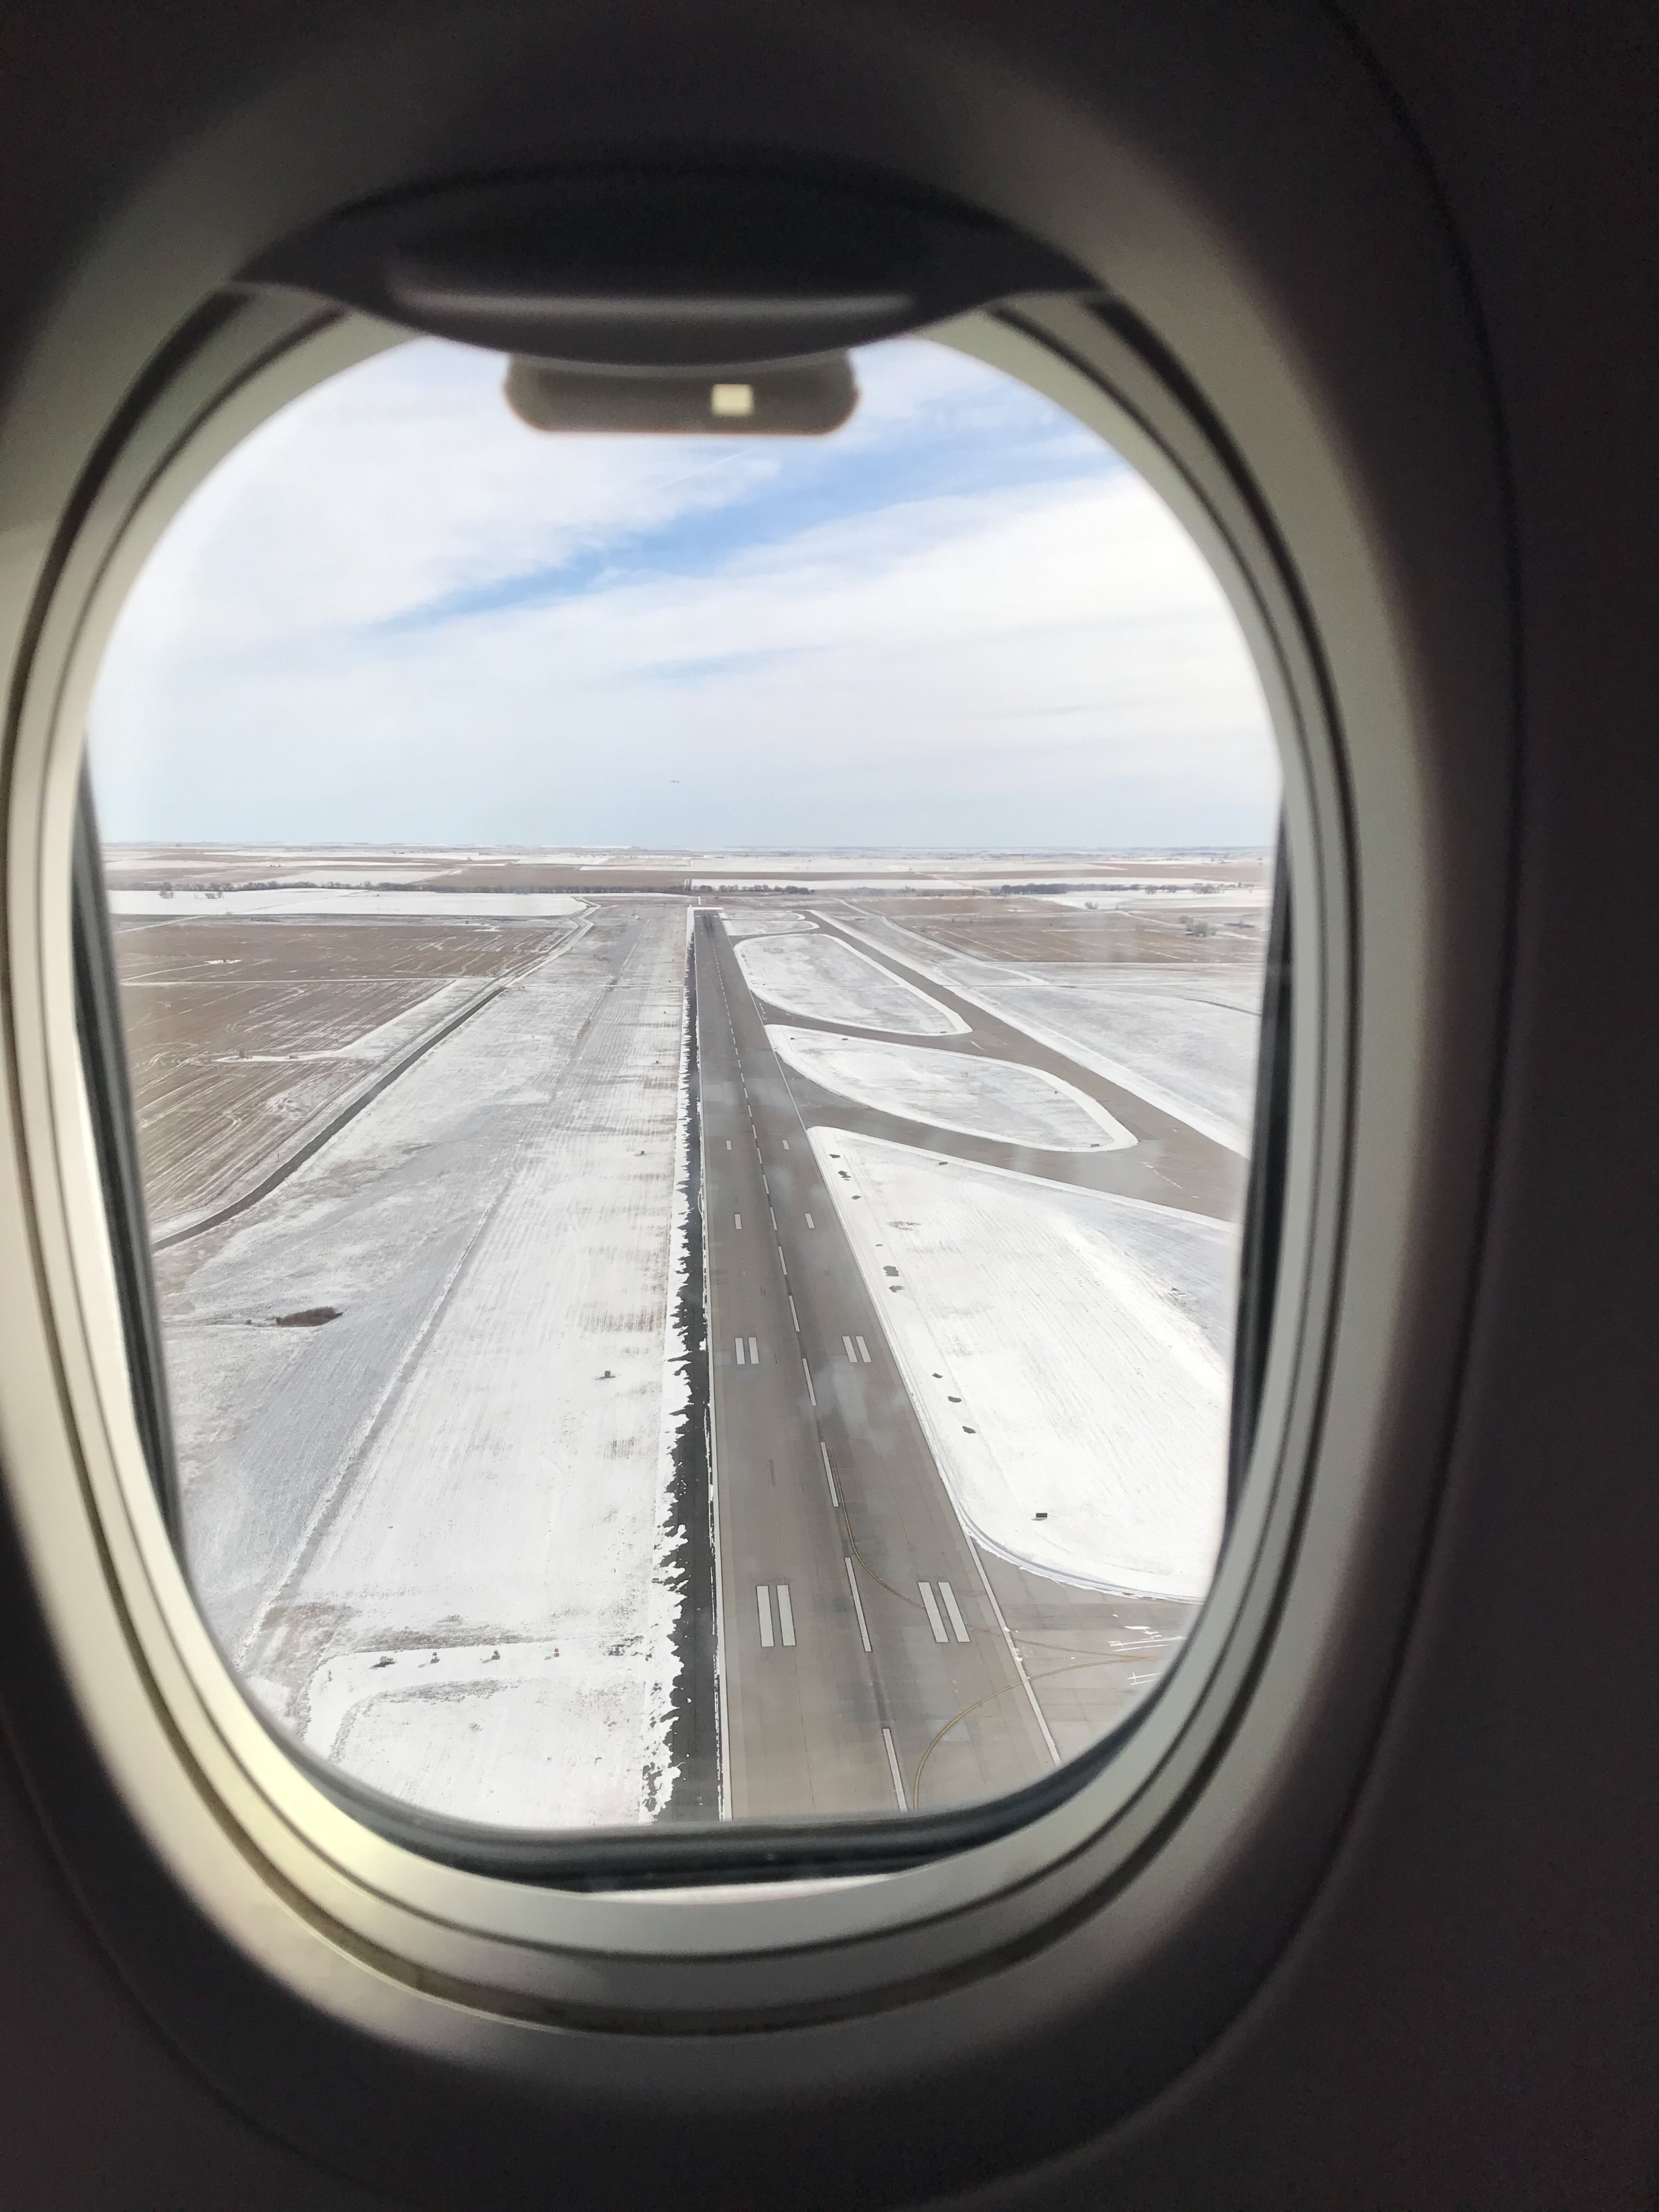 Passing over one of Denver's runways on final approach.